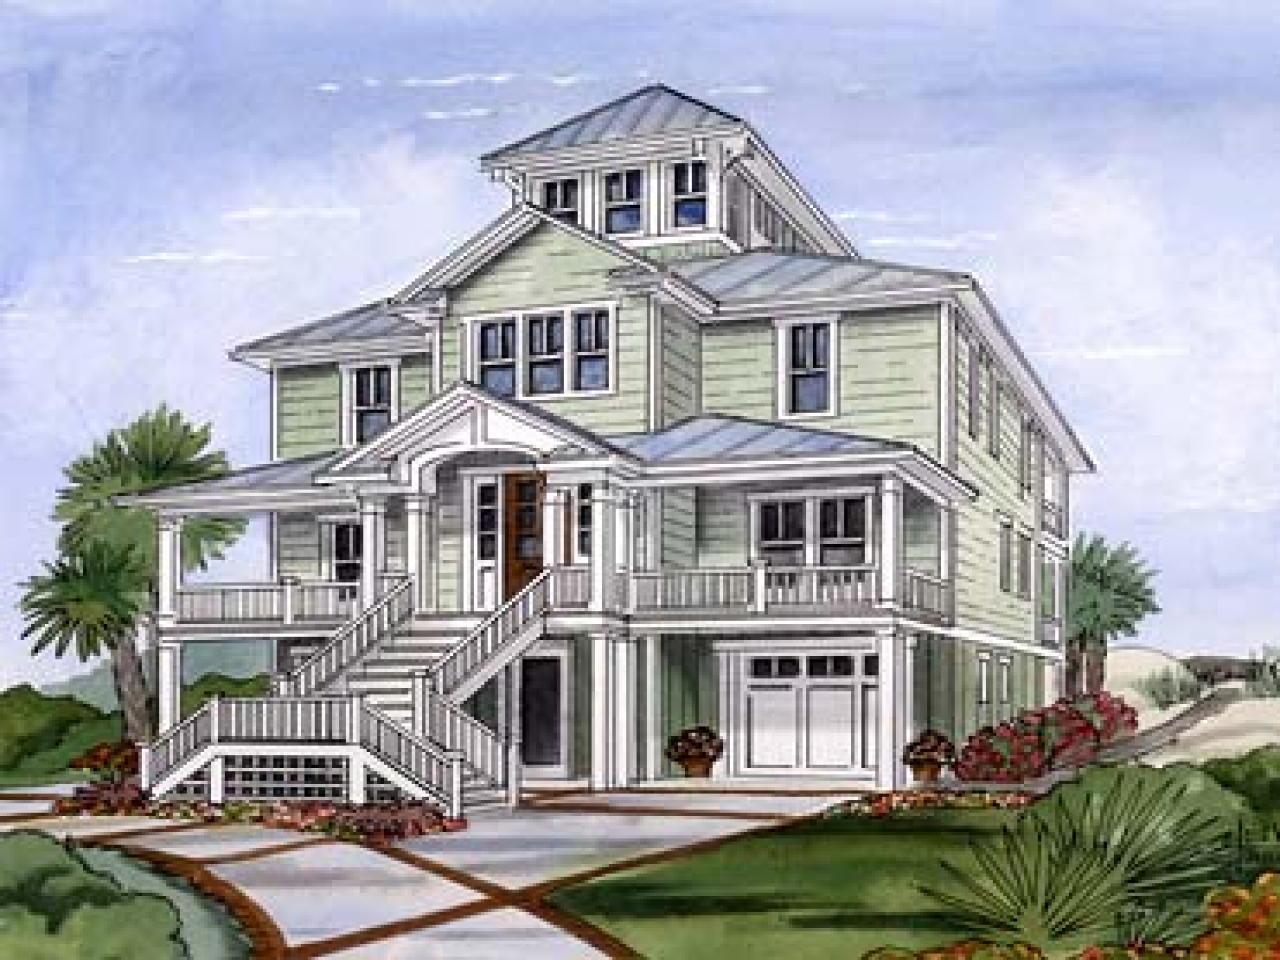 Crows nest cottage house plan weather vane house crows for Nest home design